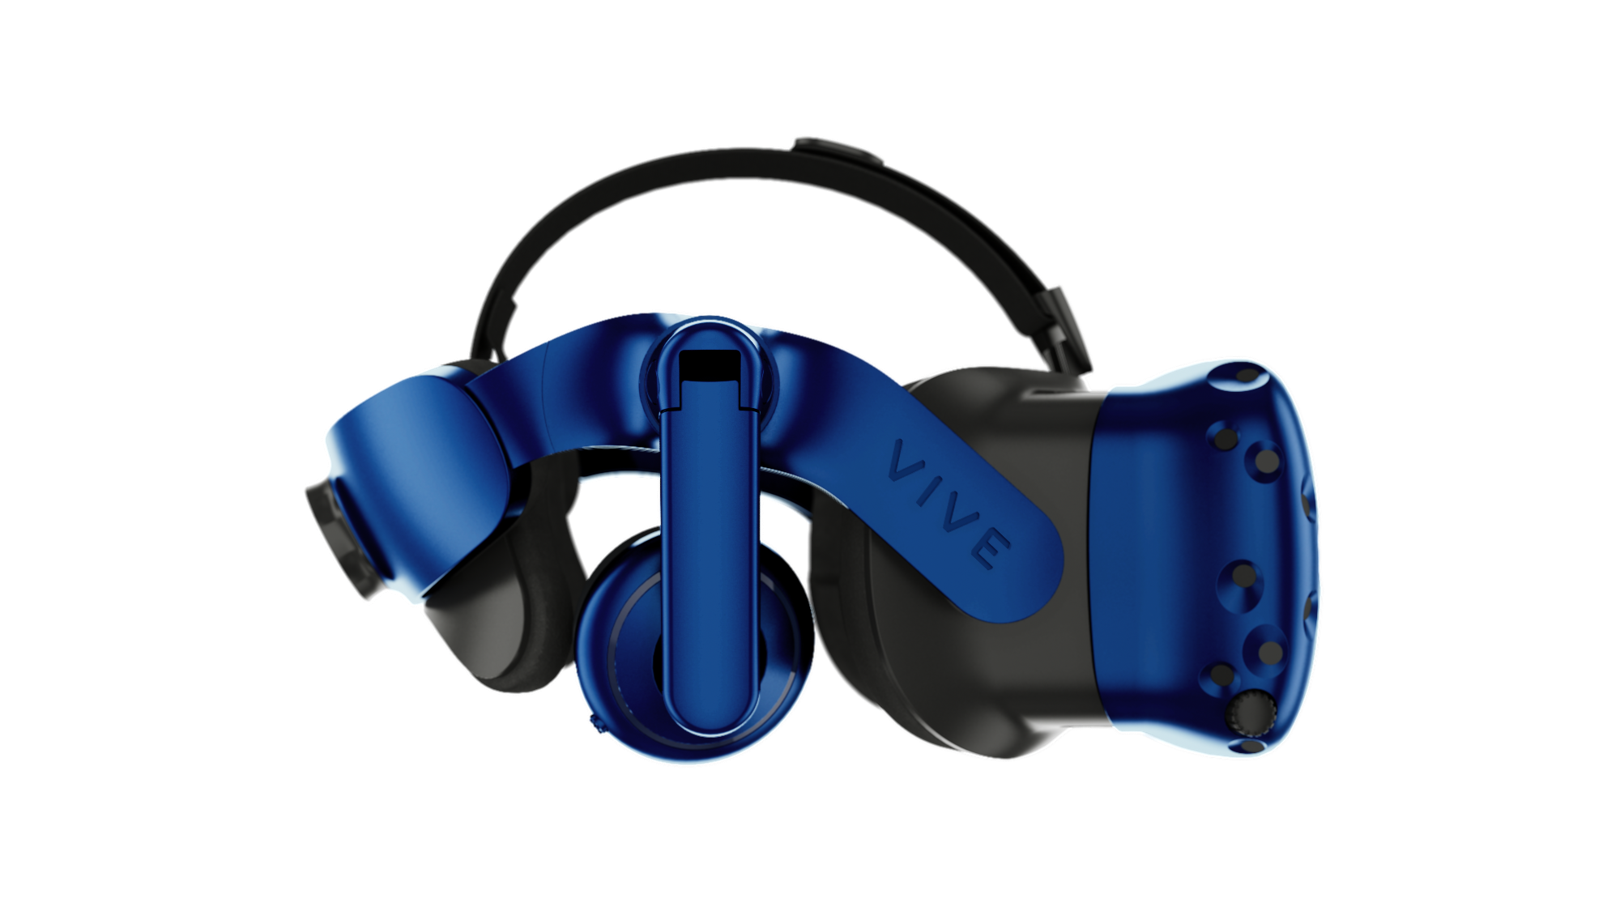 The HTC Vive Pro fixes the screen-door-effect, but other